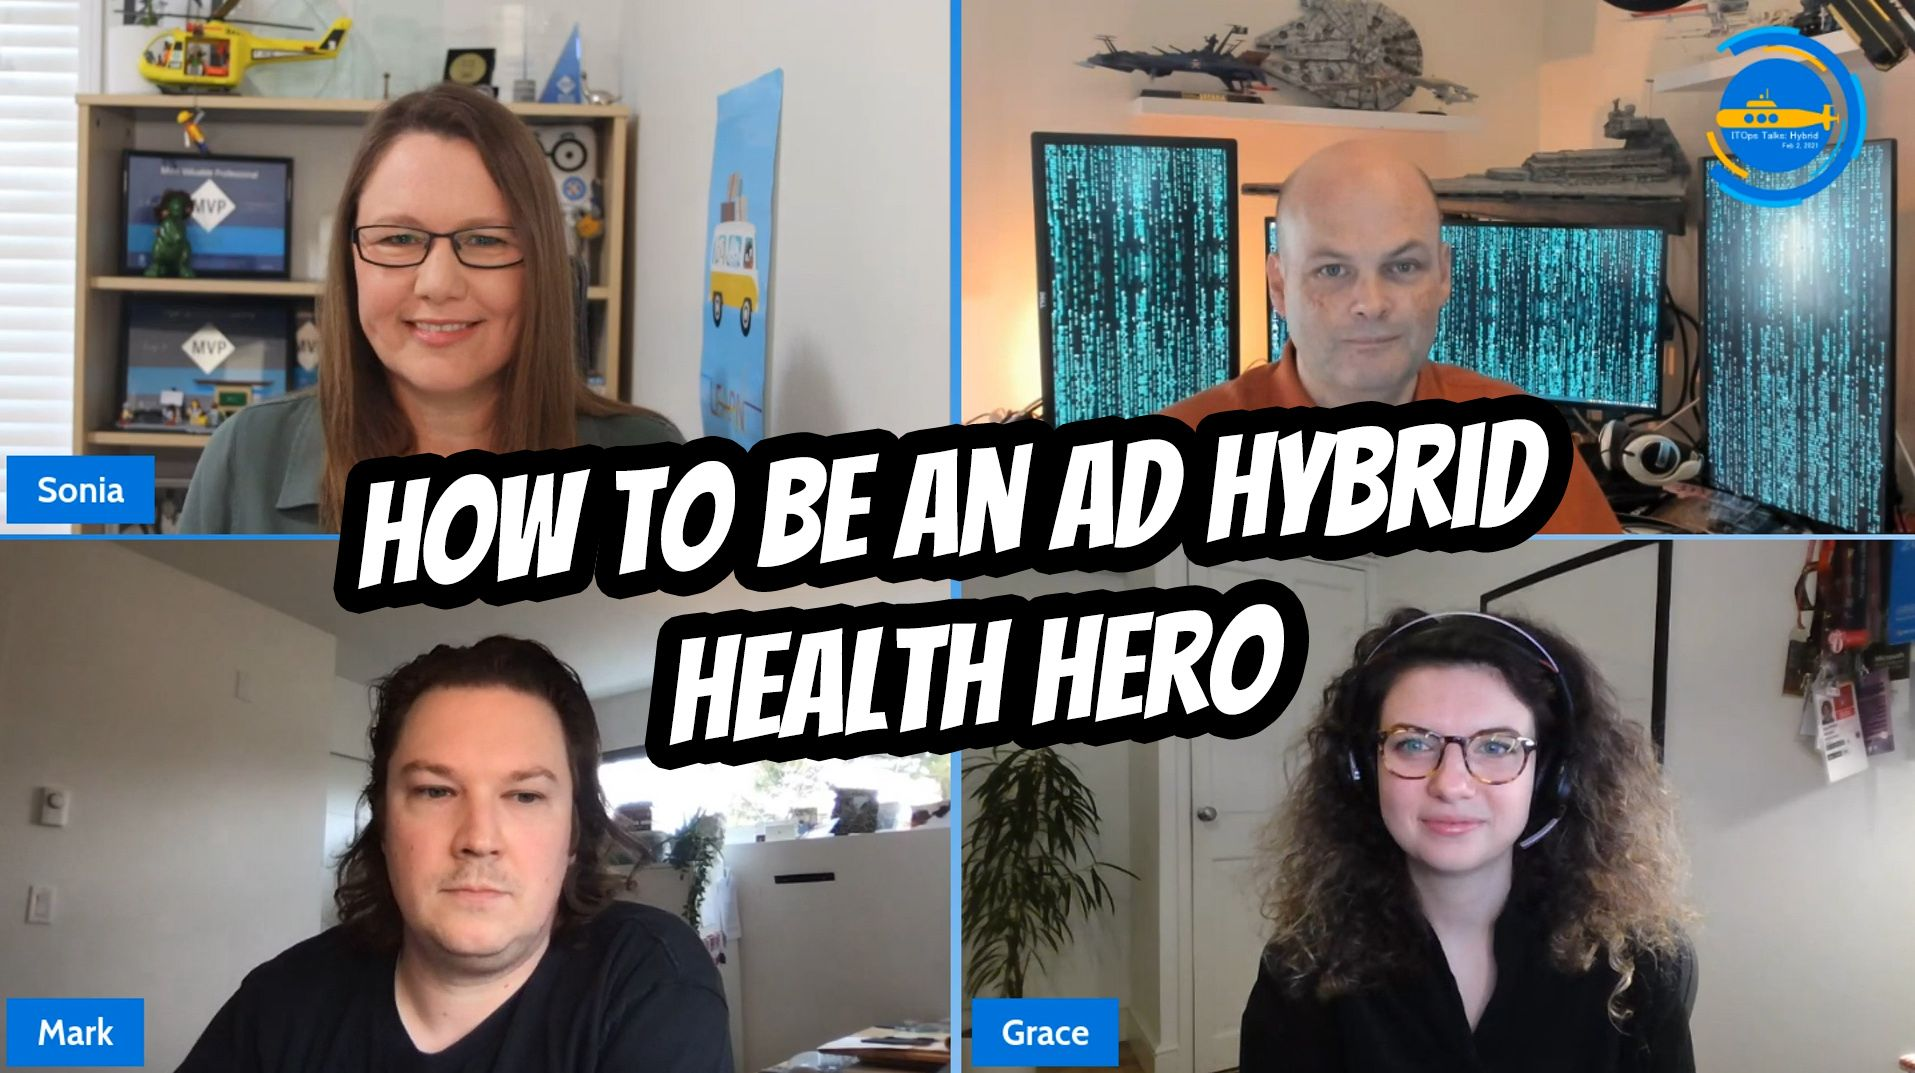 OPS106: How to be an AD hybrid health hero